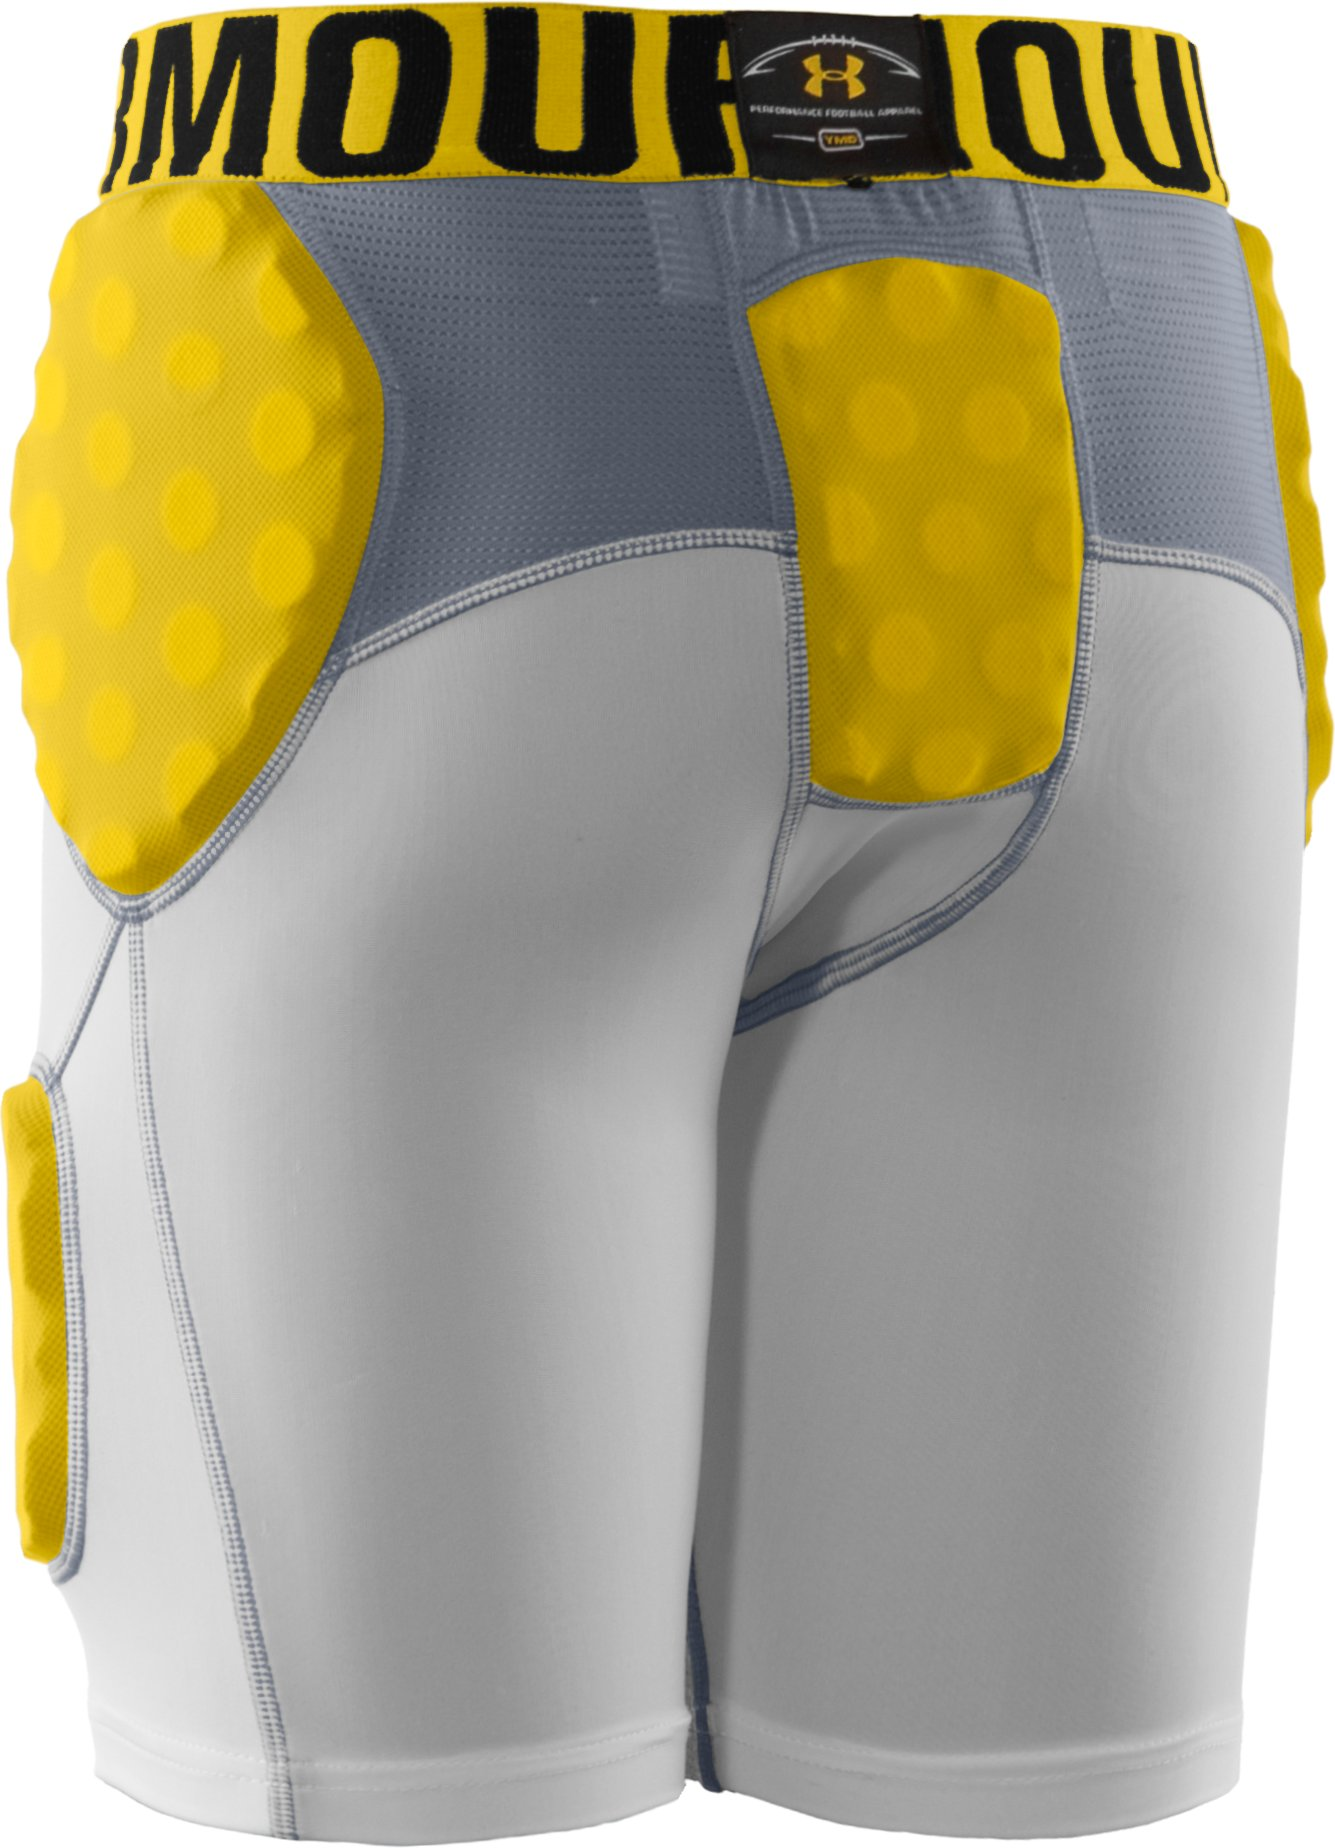 Boys' MPZ® 5-Pad Armour® Girdle, White